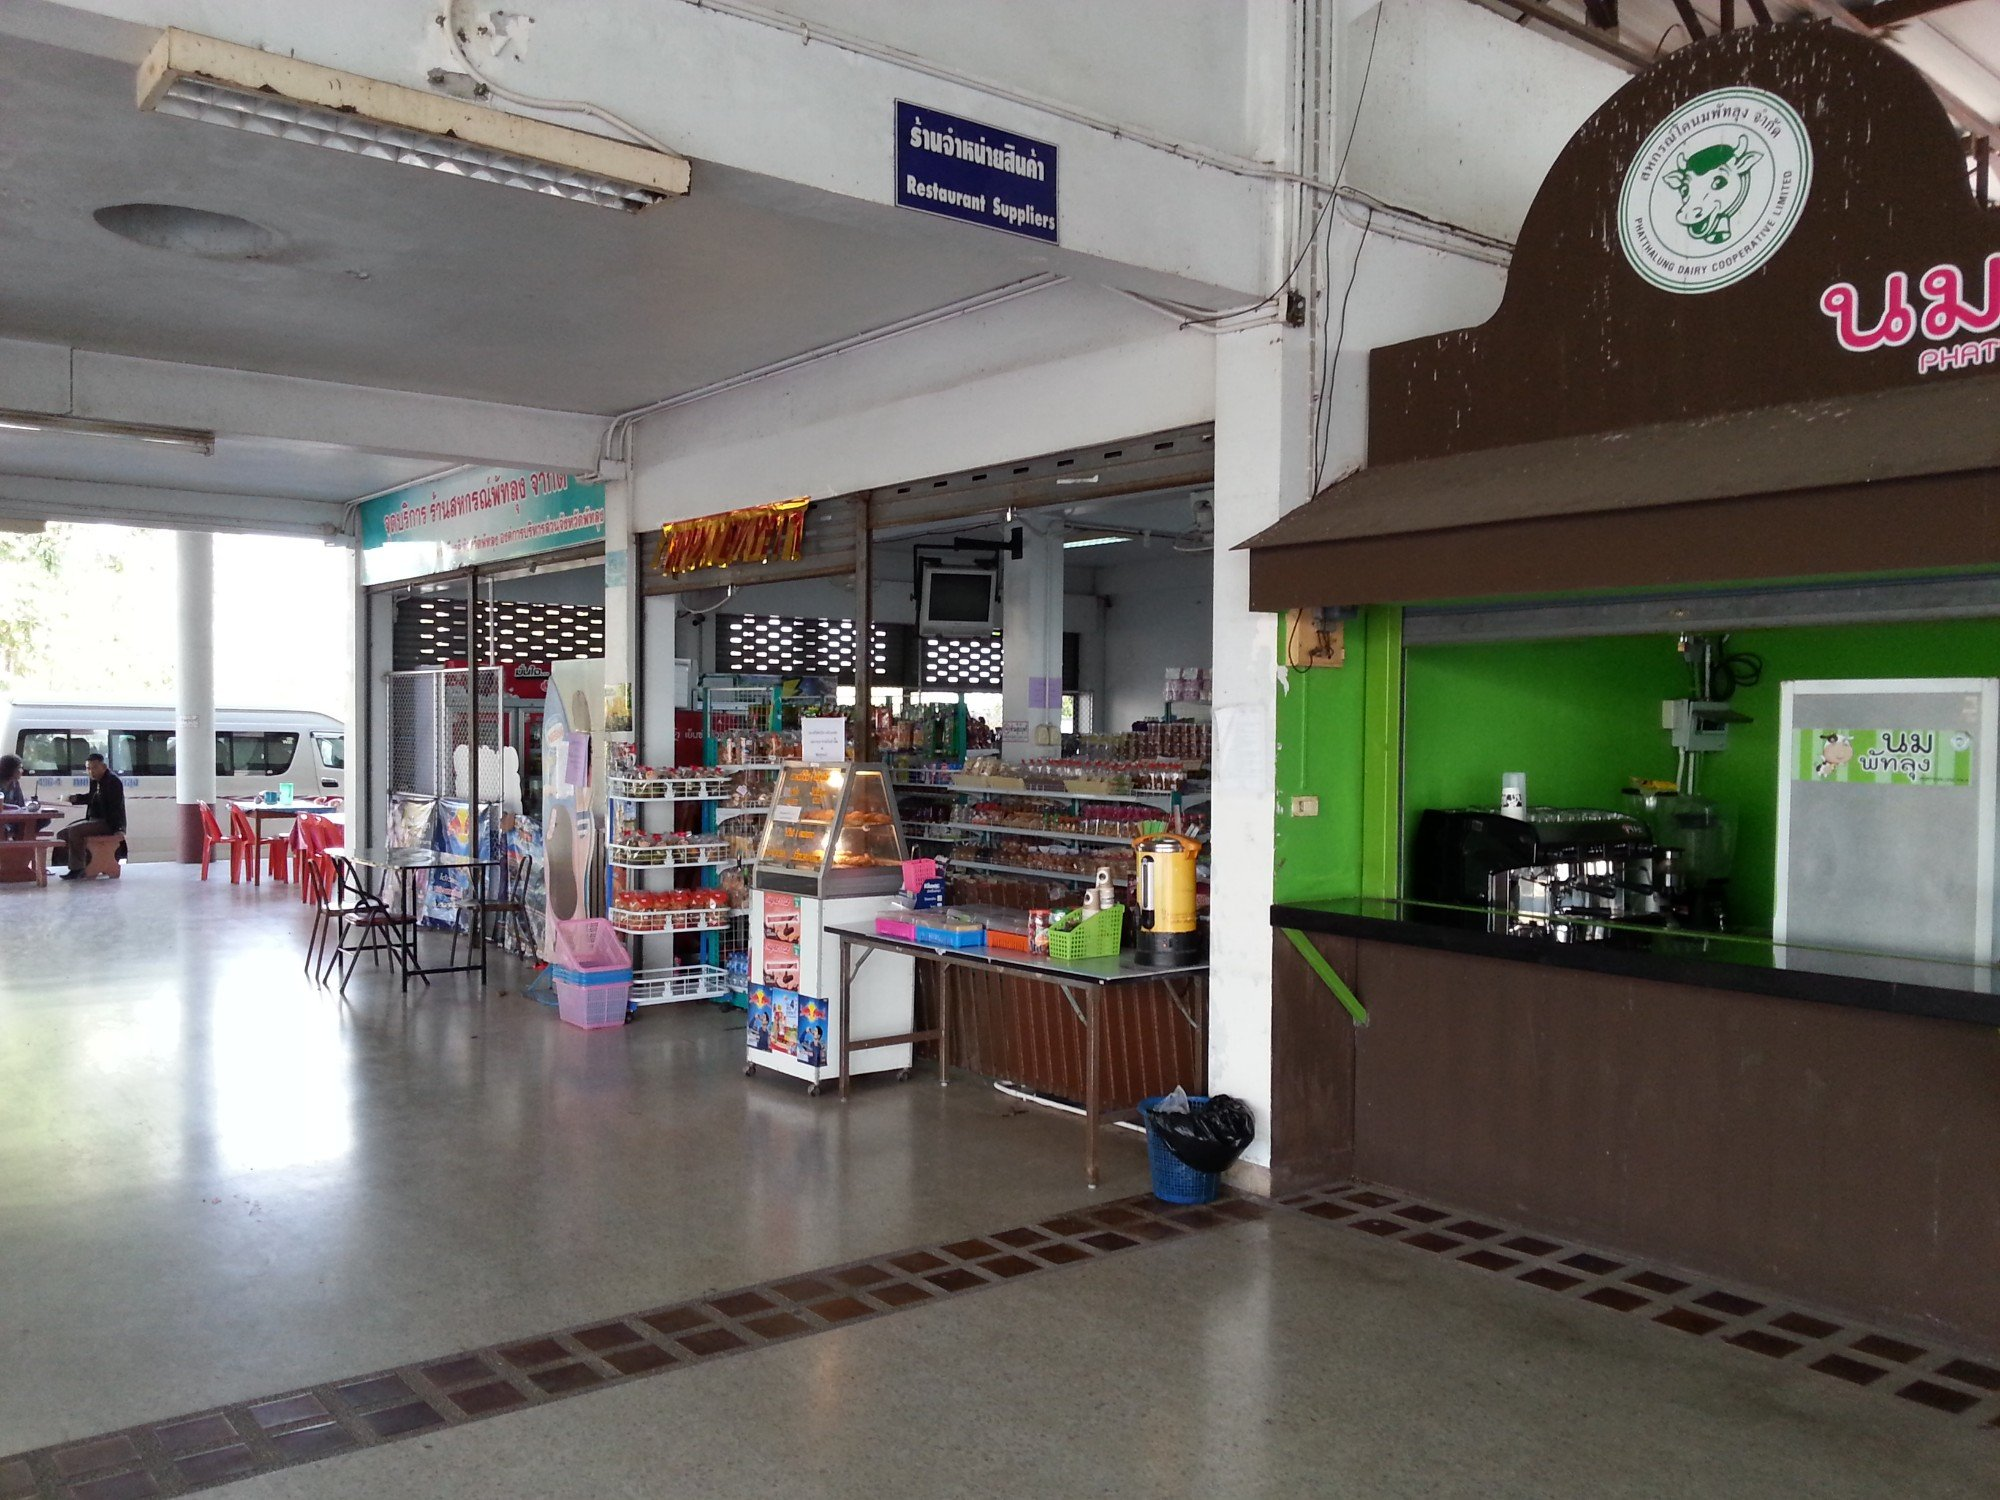 Shops and restaurants at Phatthalung Bus Station